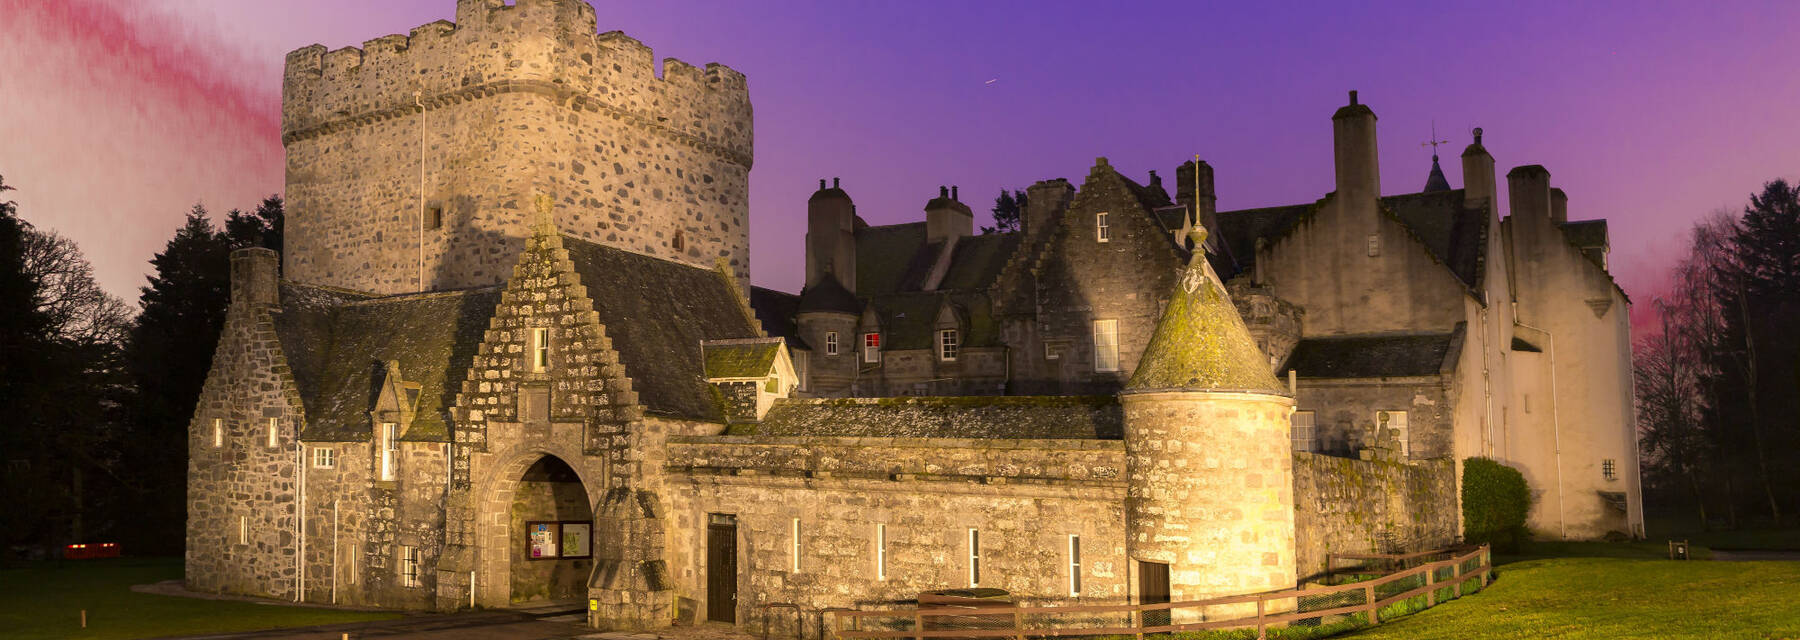 Drum Castle lit up at night